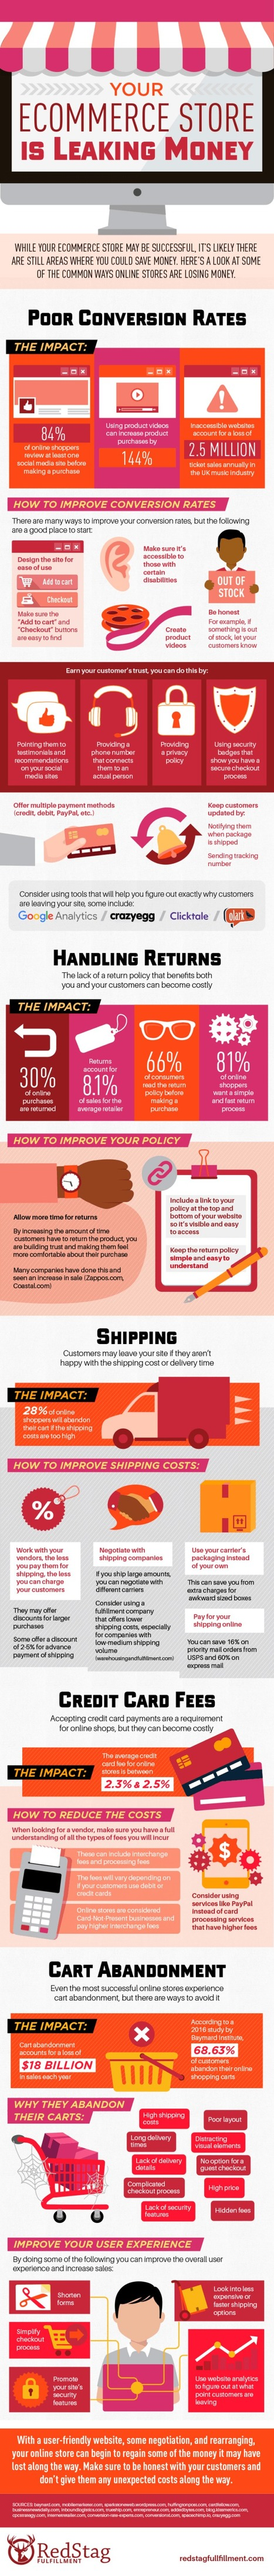 15 Ways to Increase Your Ecommerce Conversion Rate | Marketing Technology | Integrated Brand Communications | Scoop.it